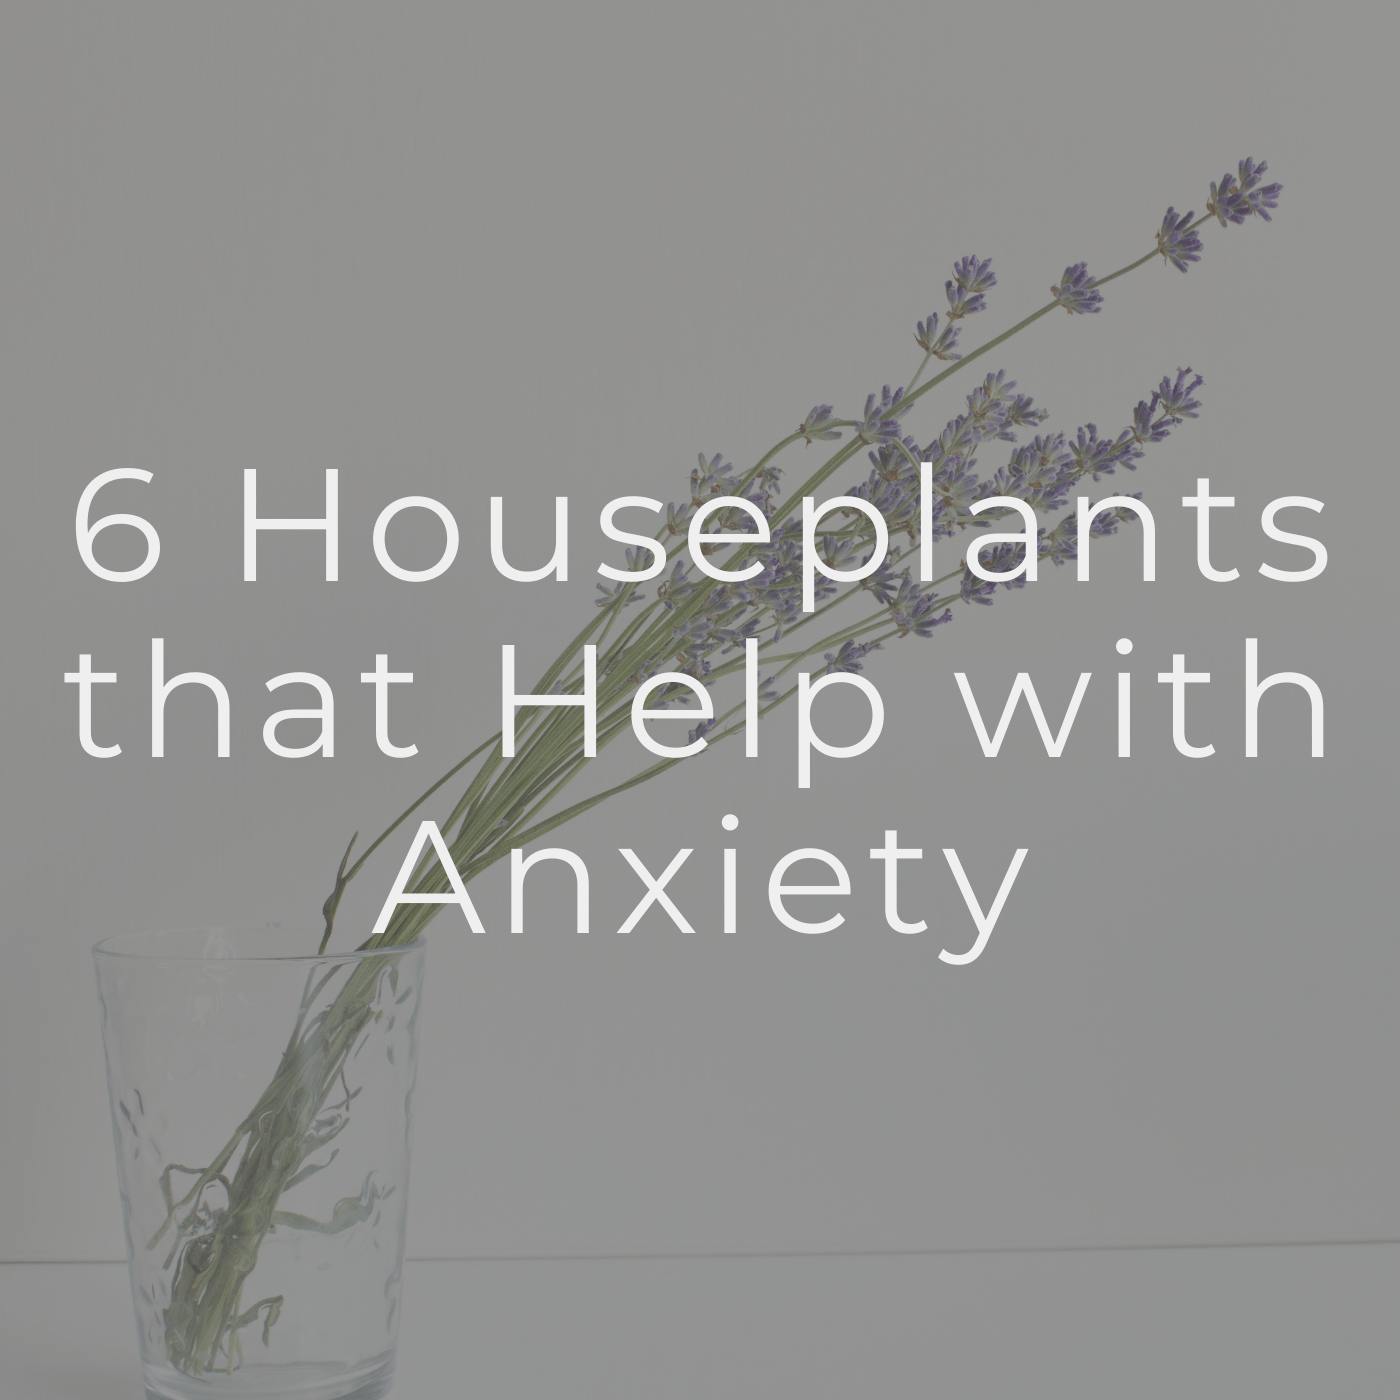 6 Houseplants that Help with Anxiety